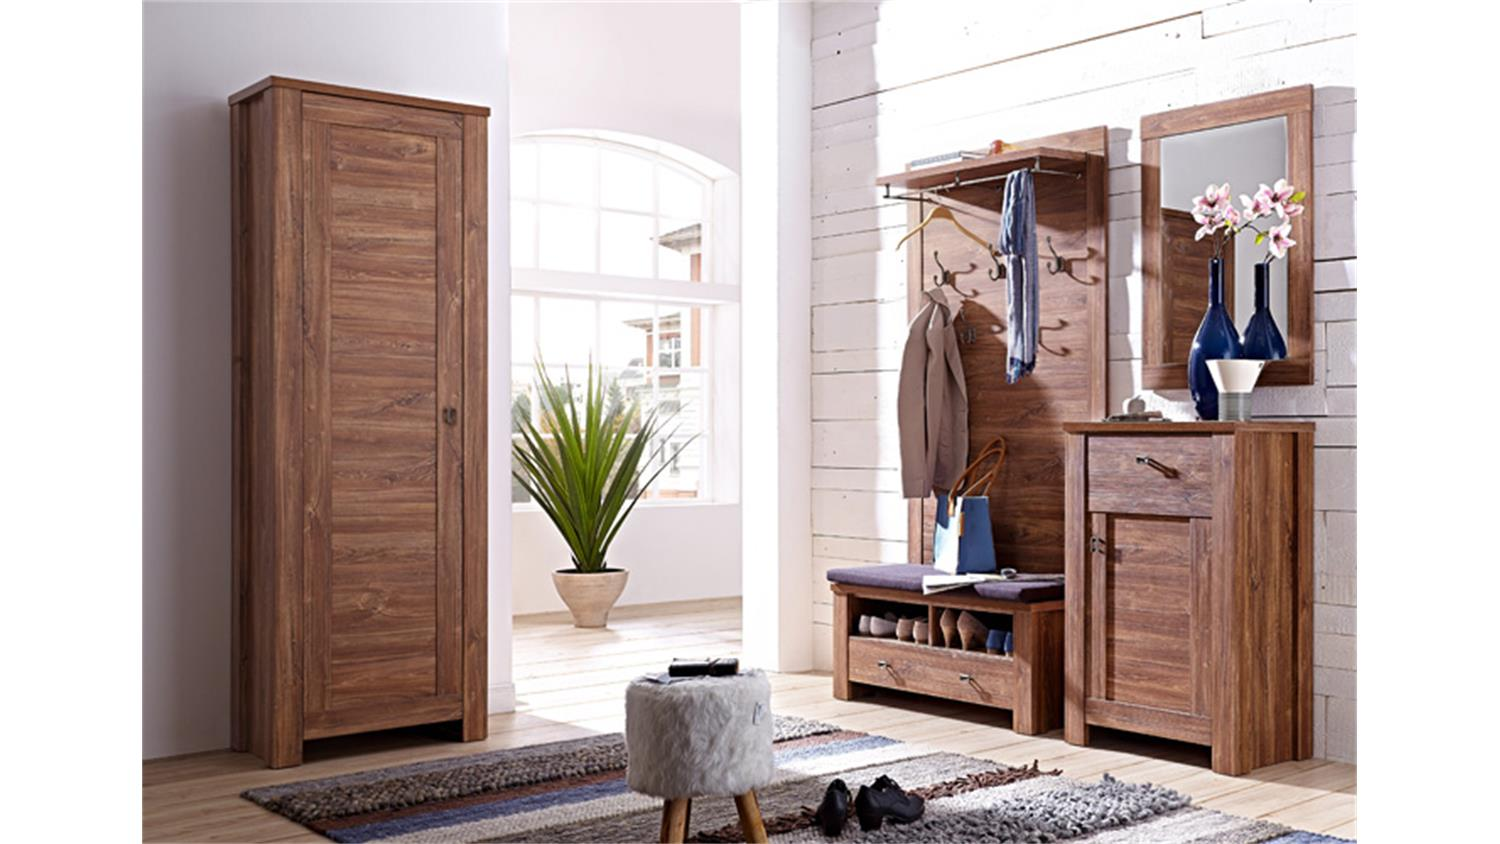 garderobe sheesham perfect best garderobe used look hta r vintage garderobe in beauty and the. Black Bedroom Furniture Sets. Home Design Ideas